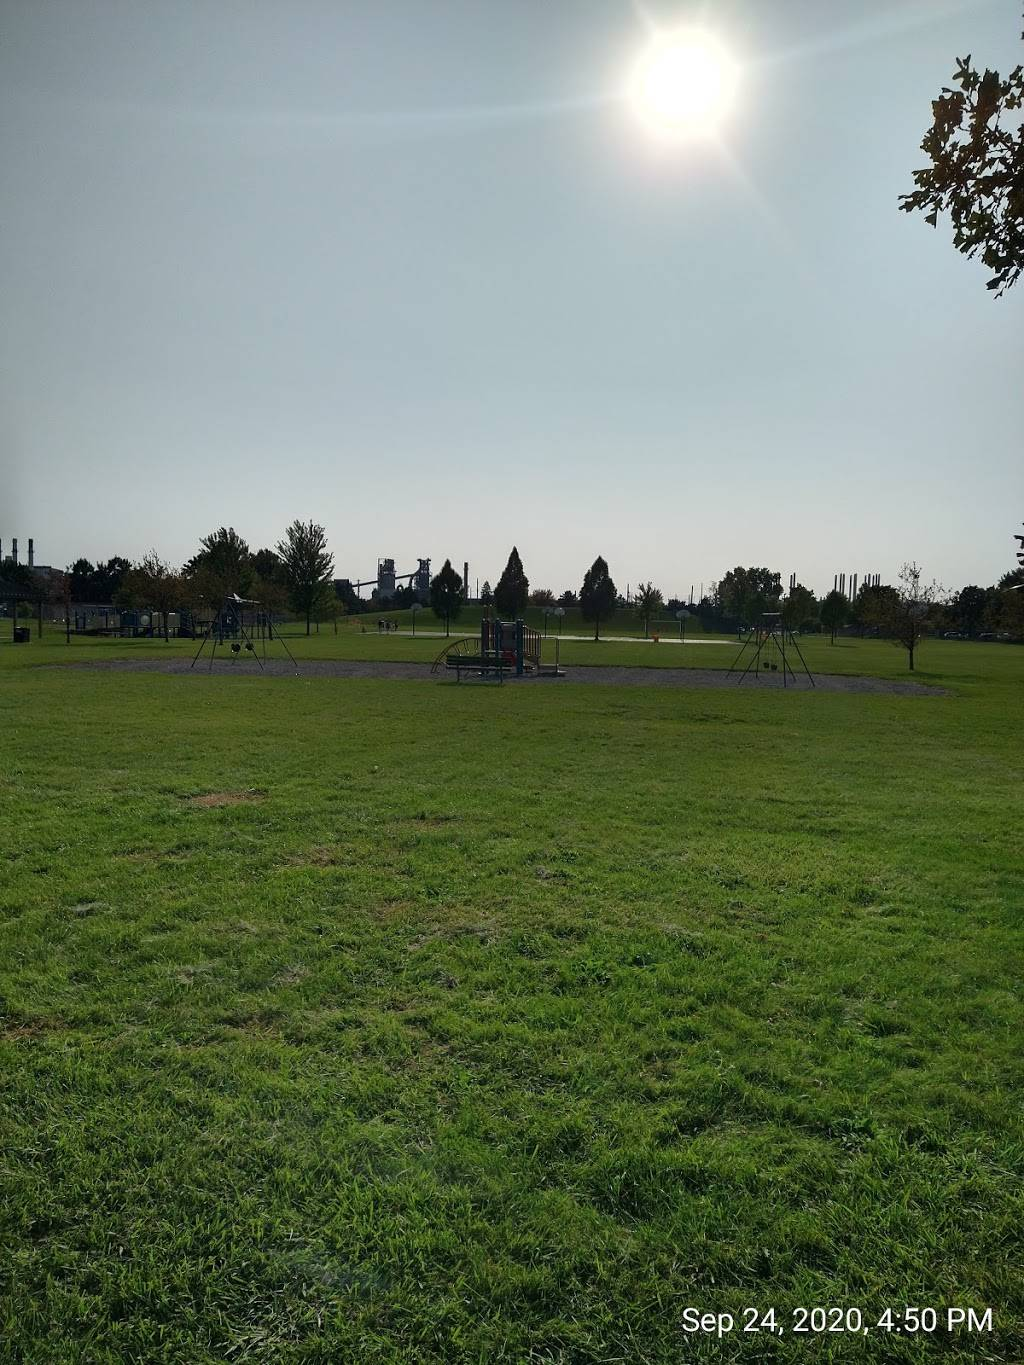 Lapeer Park - park  | Photo 2 of 10 | Address: 10040 Lapeer Park pathway, Dearborn, MI 48120, USA | Phone: (313) 943-2350